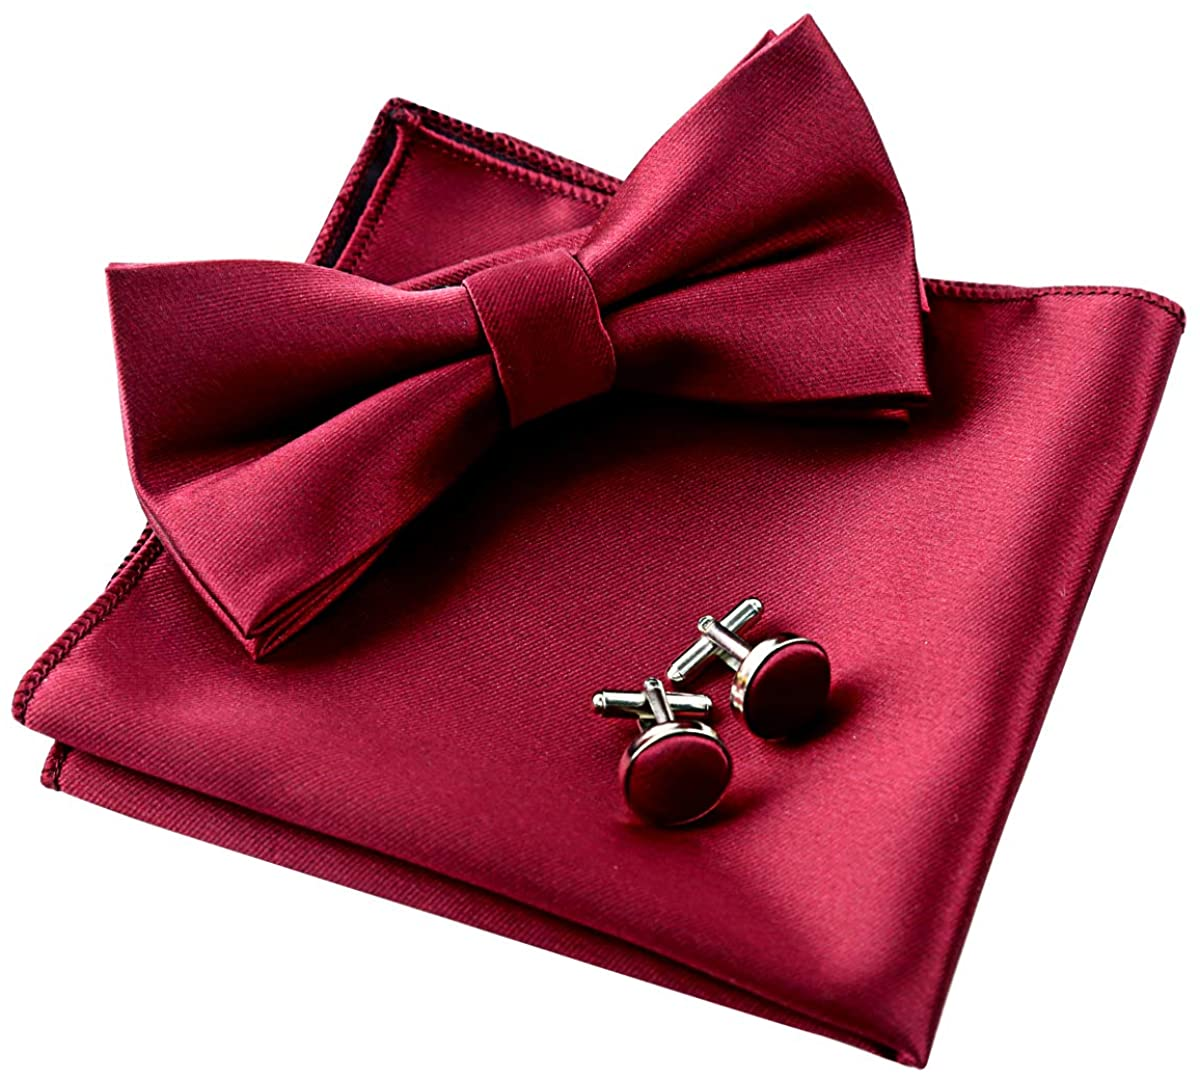 Alizeal Mens Tuxedo Bow Tie, Hanky and Cufflinks Set